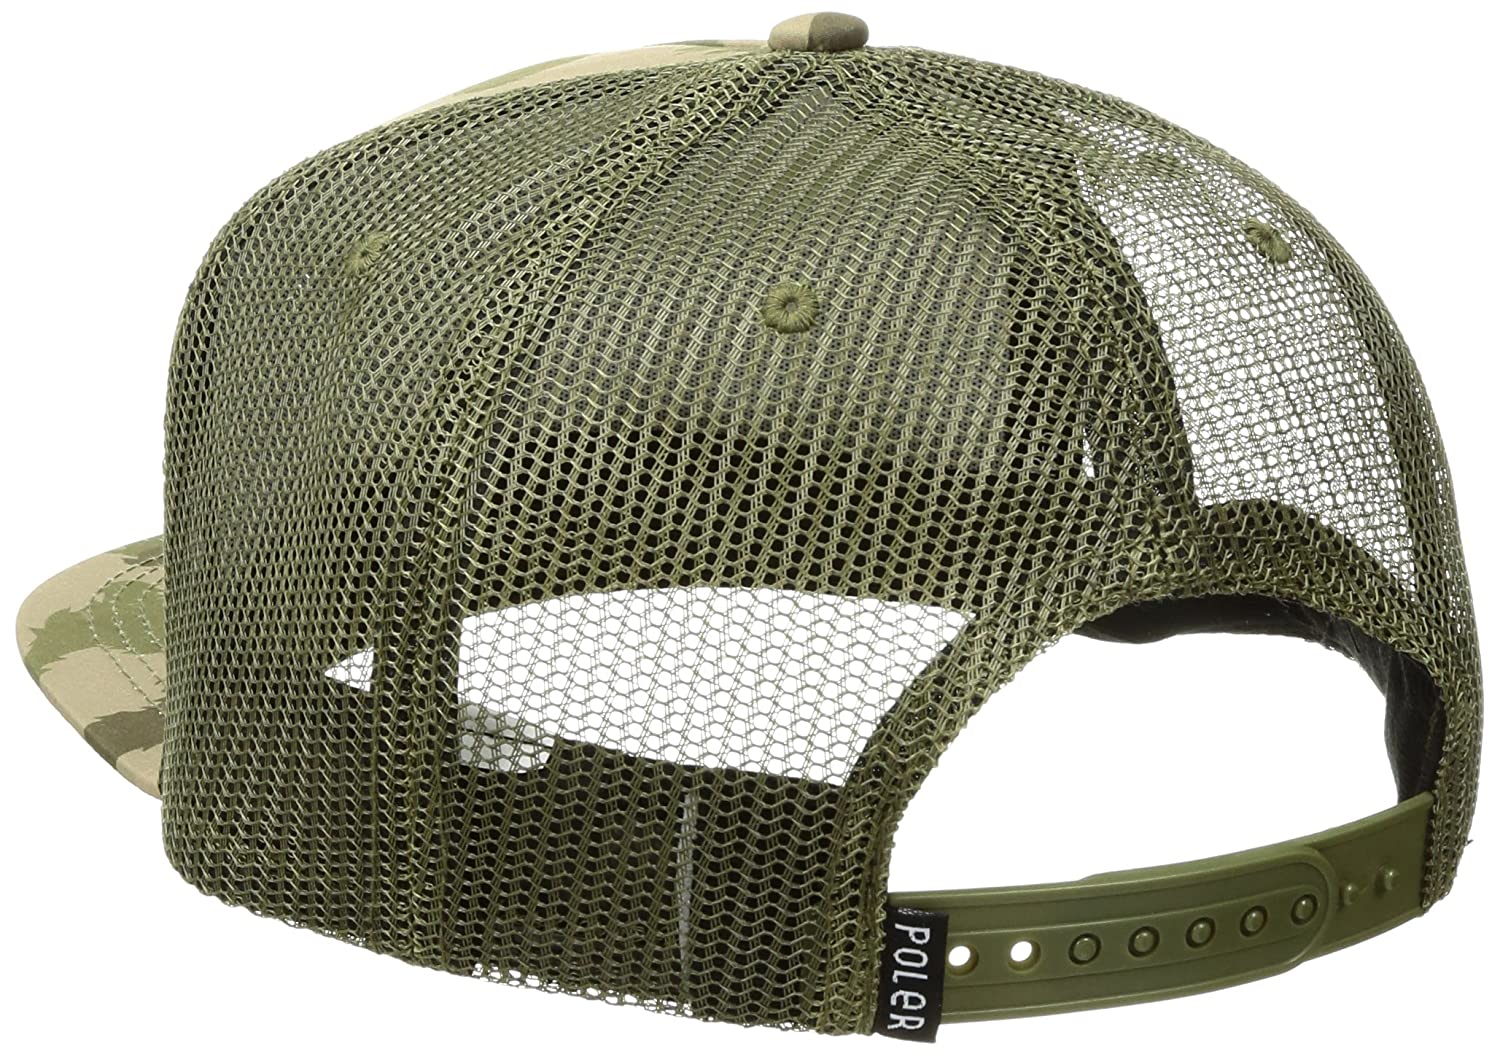 7aba8dcc Poler Men's Camp Vibes Trucker Hat, Green Furry Camo, One Size:  Amazon.co.uk: Clothing